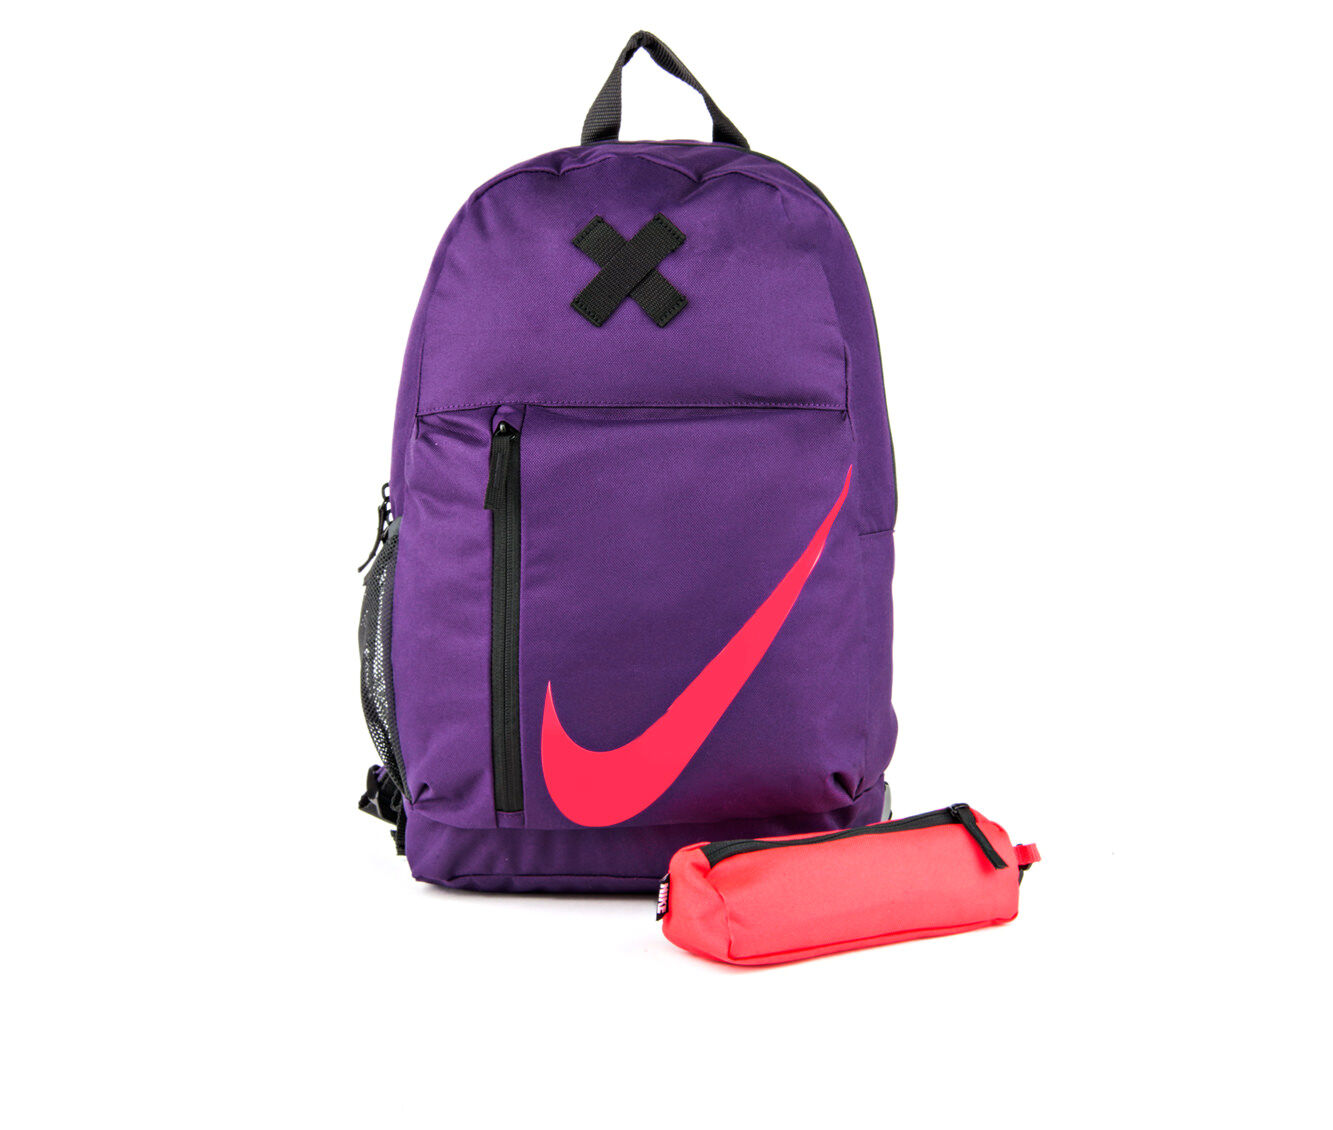 3353a975d4 Welcome to Lakeview Comprehensive Dentistry. nike elite pink backpack